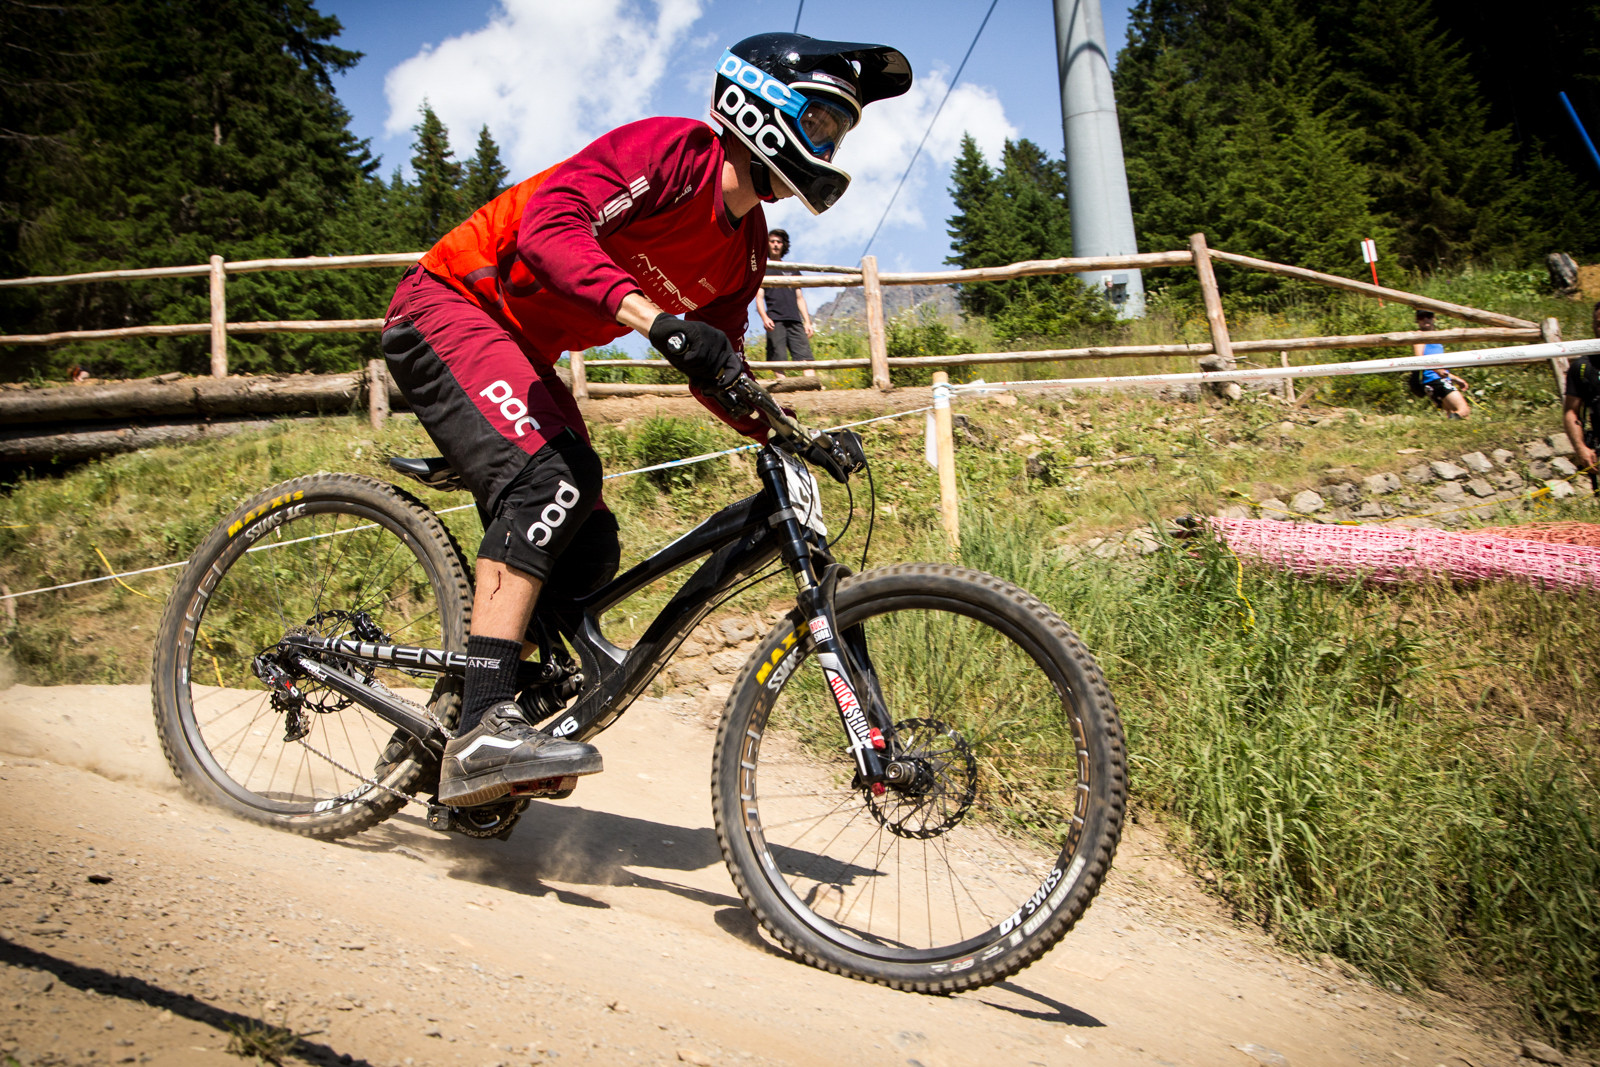 G-Out Project, Lenzerheide World Cup, Intense - G-Out Project - Lenzerheide World Cup - Mountain Biking Pictures - Vital MTB